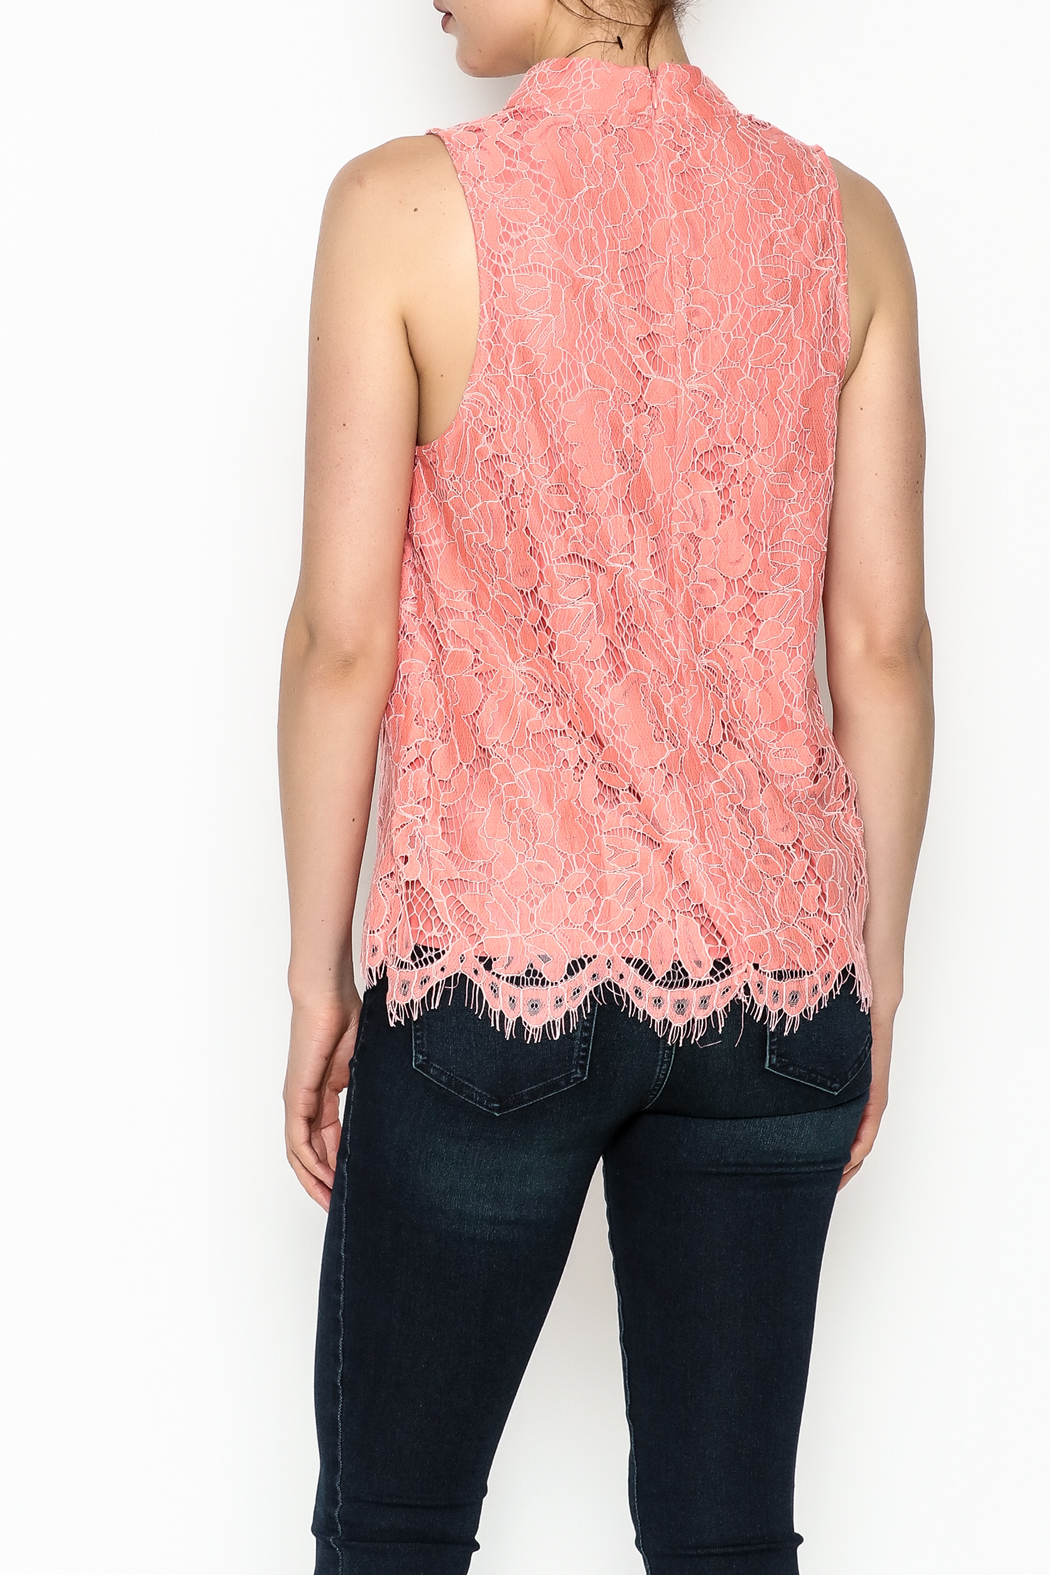 Do & Be Coral Lace Choker Top - Back Cropped Image